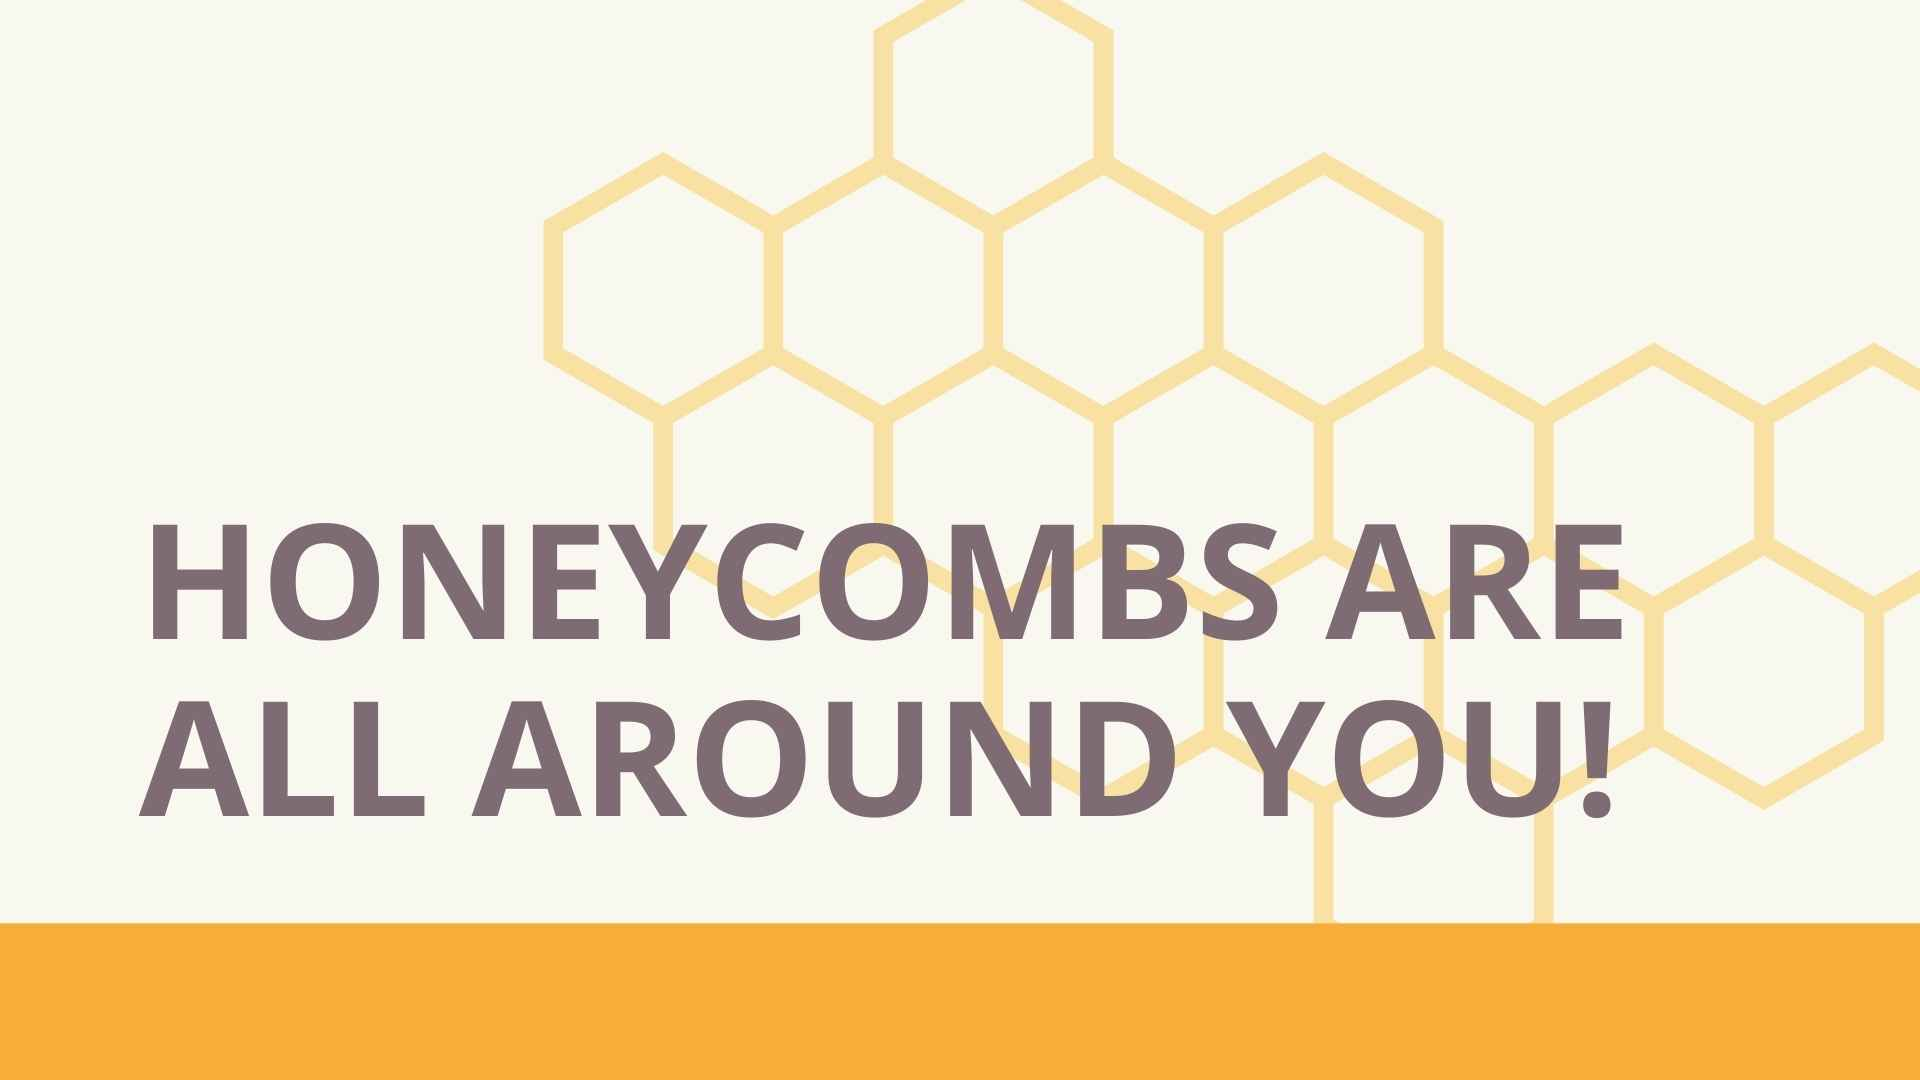 honeycombs are all around you